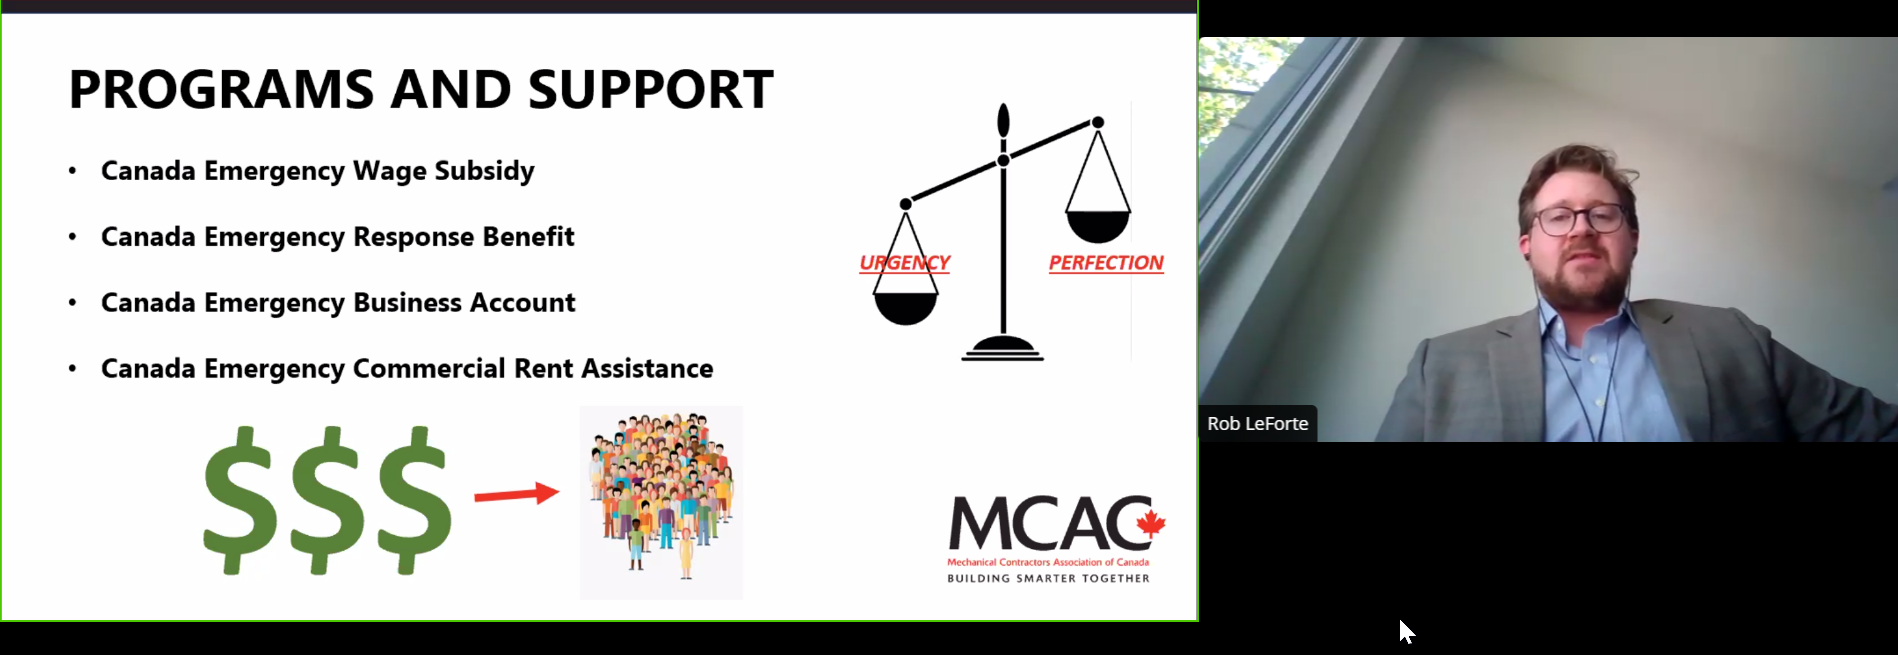 Mechanical Contractors Association of Canada consultant Rob LeForte told a webinar audience that the federal Ministry of Small Business has initiated a consultation process with the goal of making the emergency wage subsidy program more flexible. LeForte said the program will be valuable in helping businesses open back up after shutdowns.